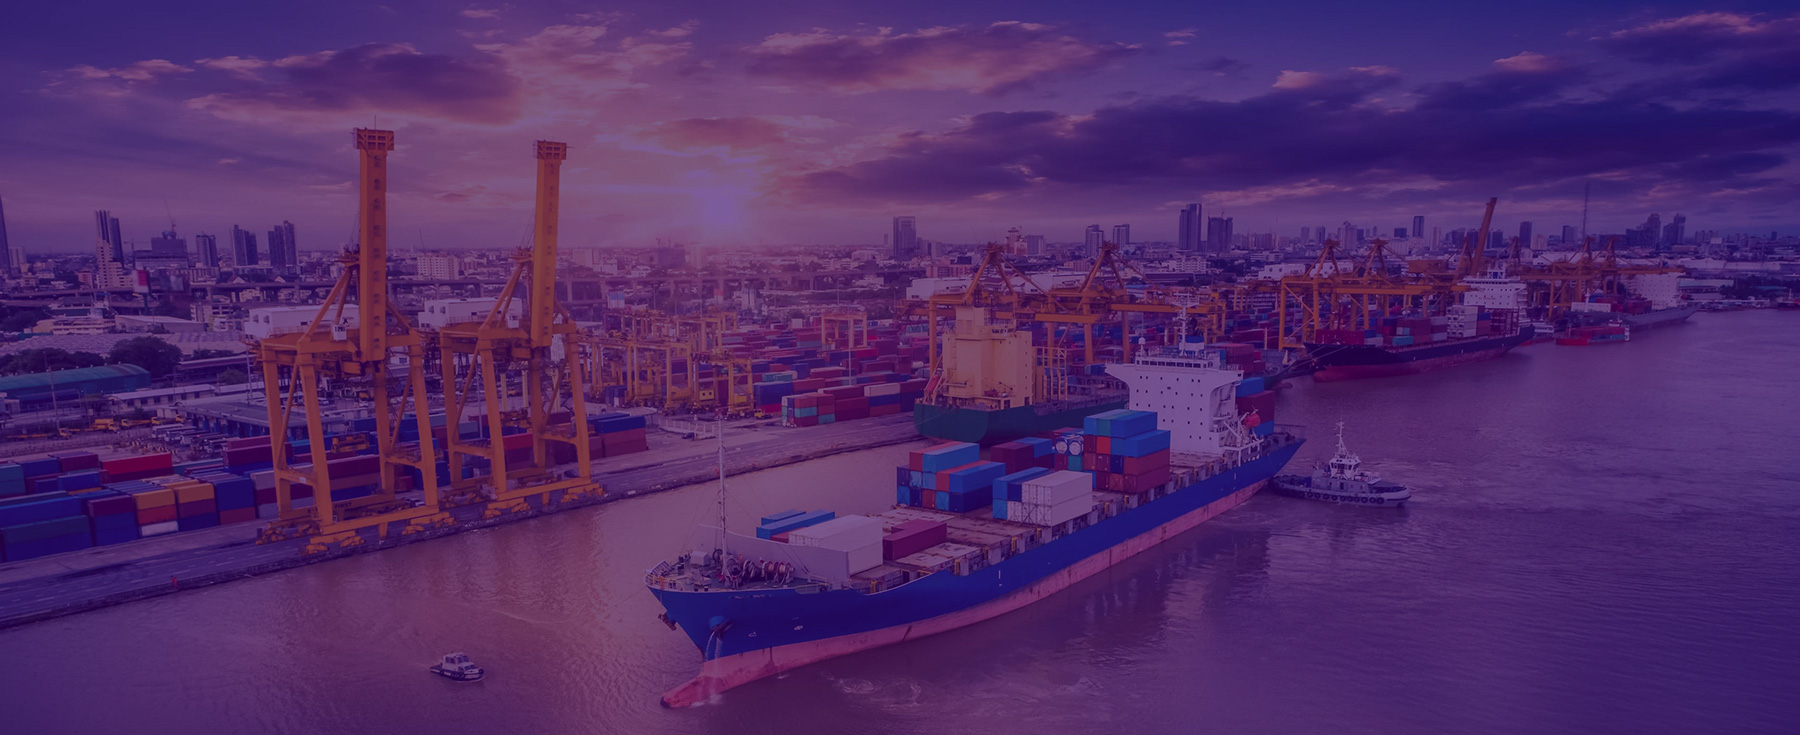 About Maris Port Solutions